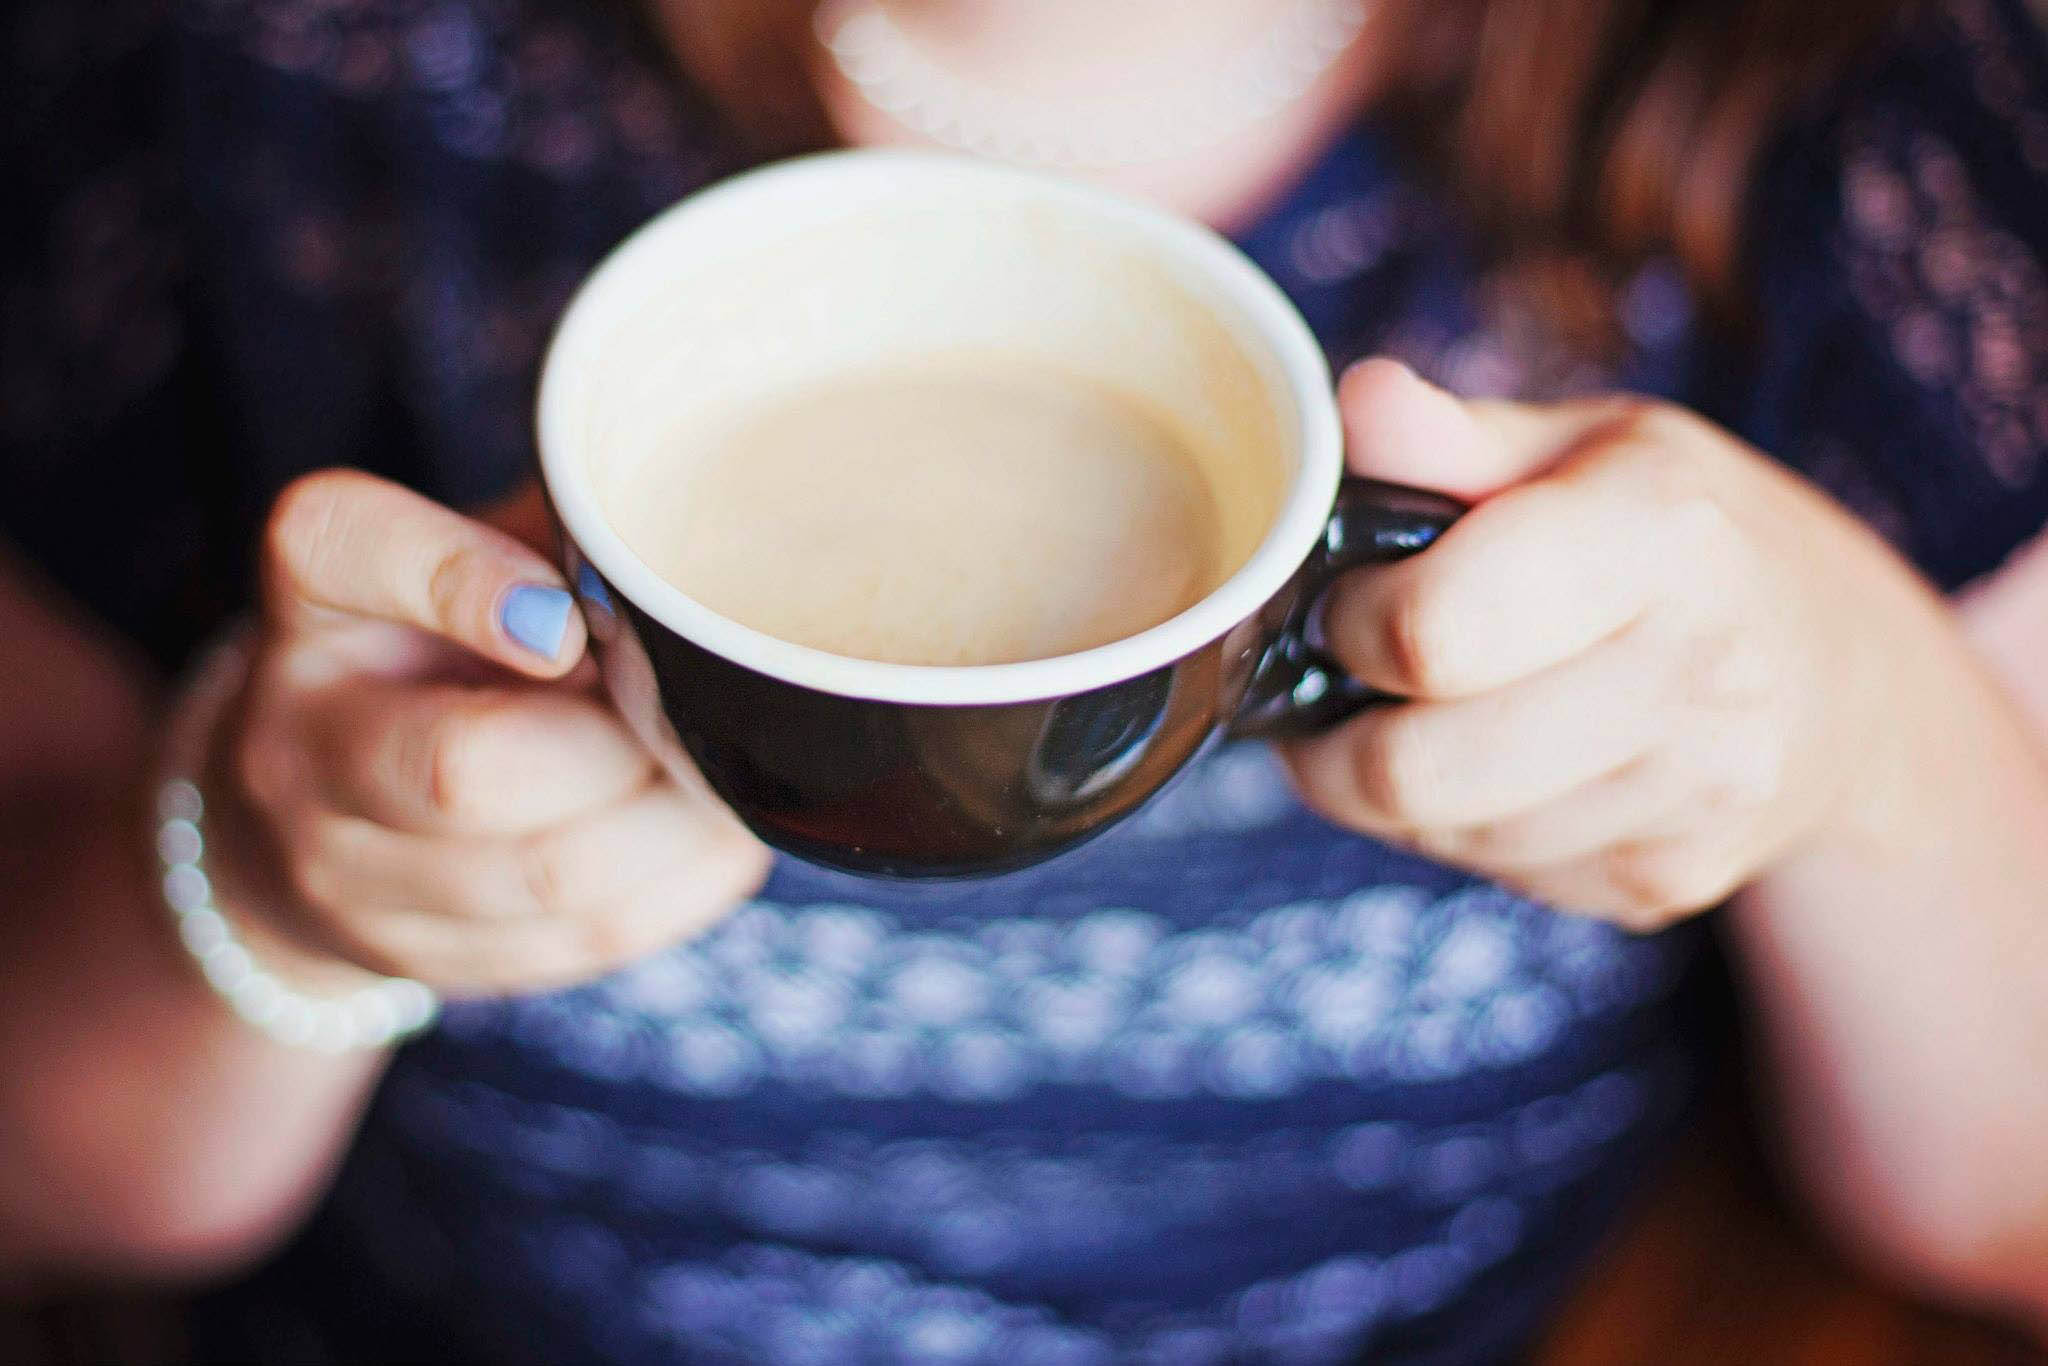 Keep warm - When we are cold it can make us feel more depressed, so wrap up warmly. Drink hot drinks and try to keep your home heated around 18 – 21C.